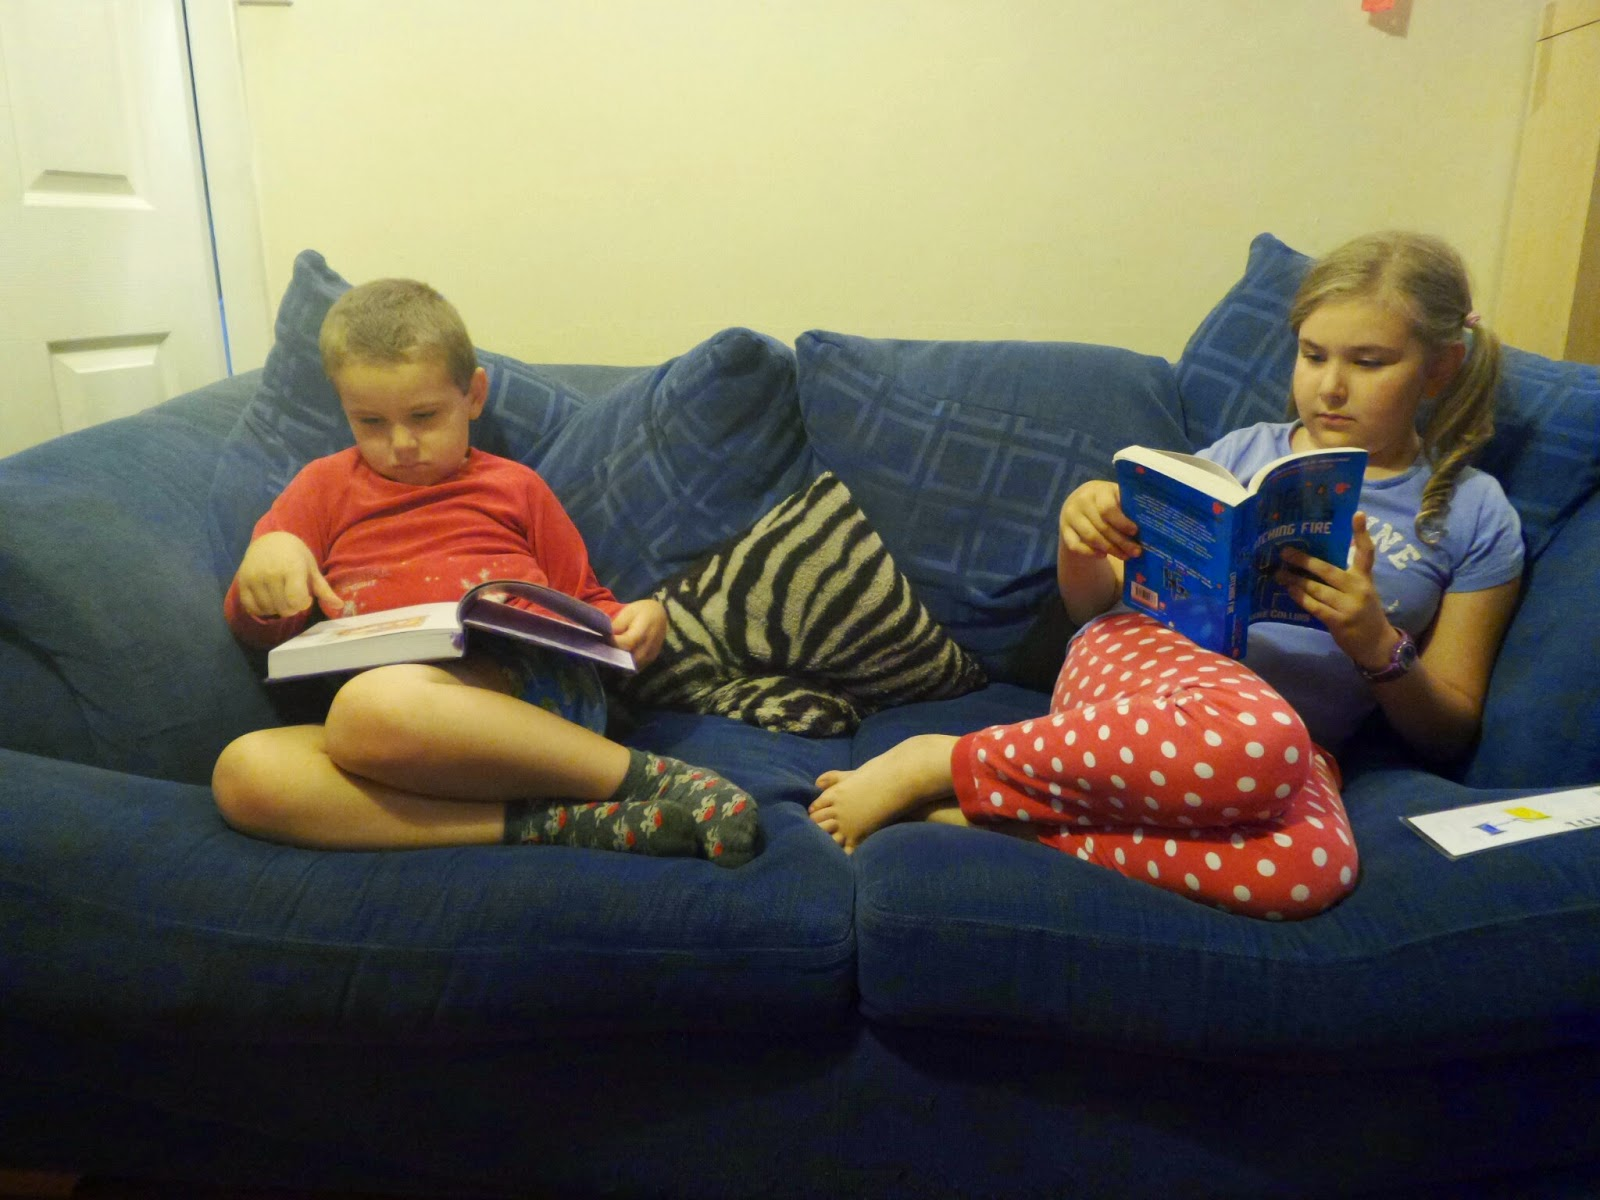 Children reading on the Sofa